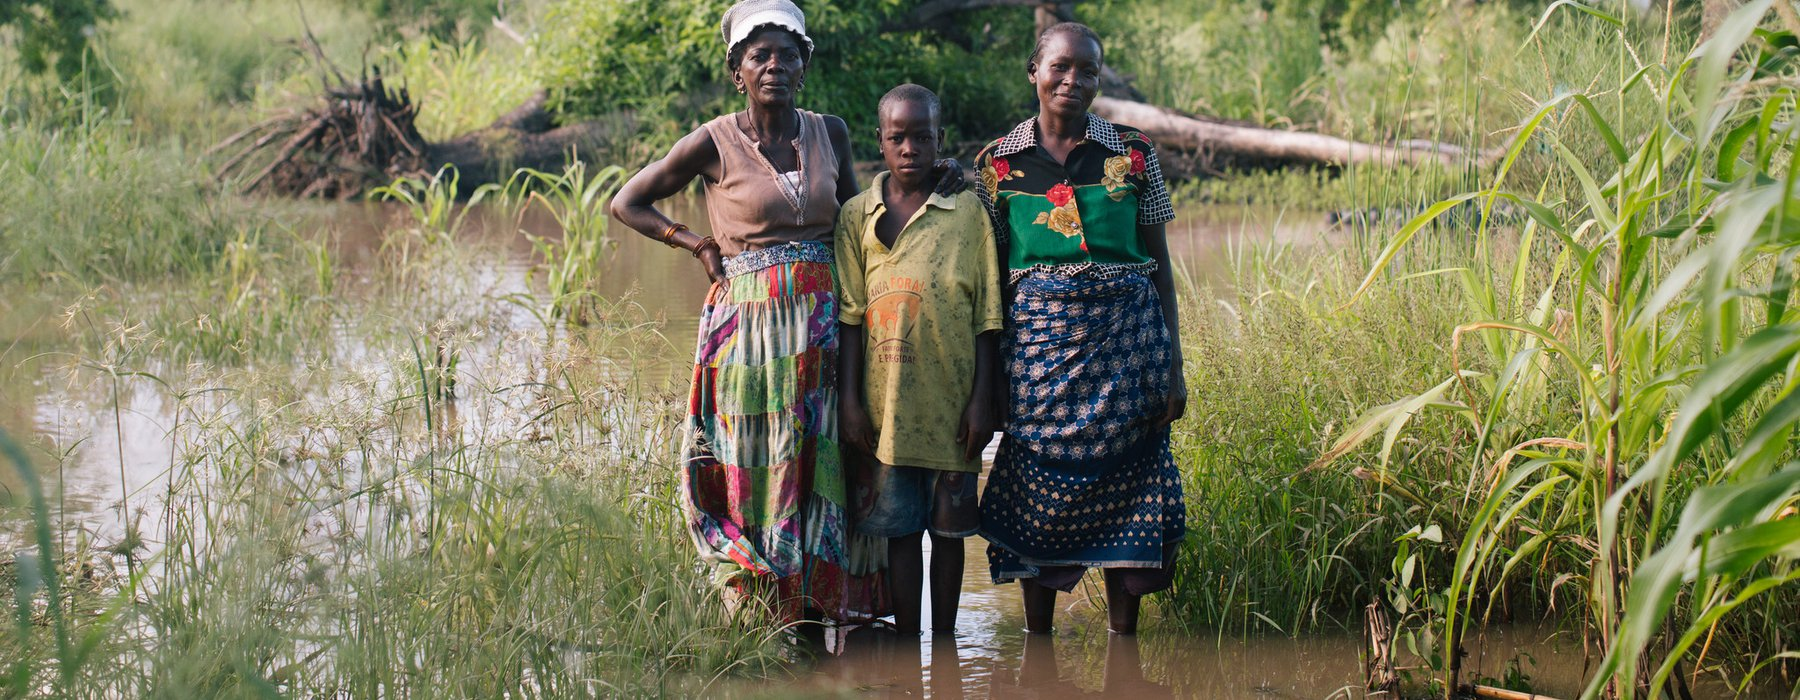 Fatima, Rita and a child stand in a flooded area.